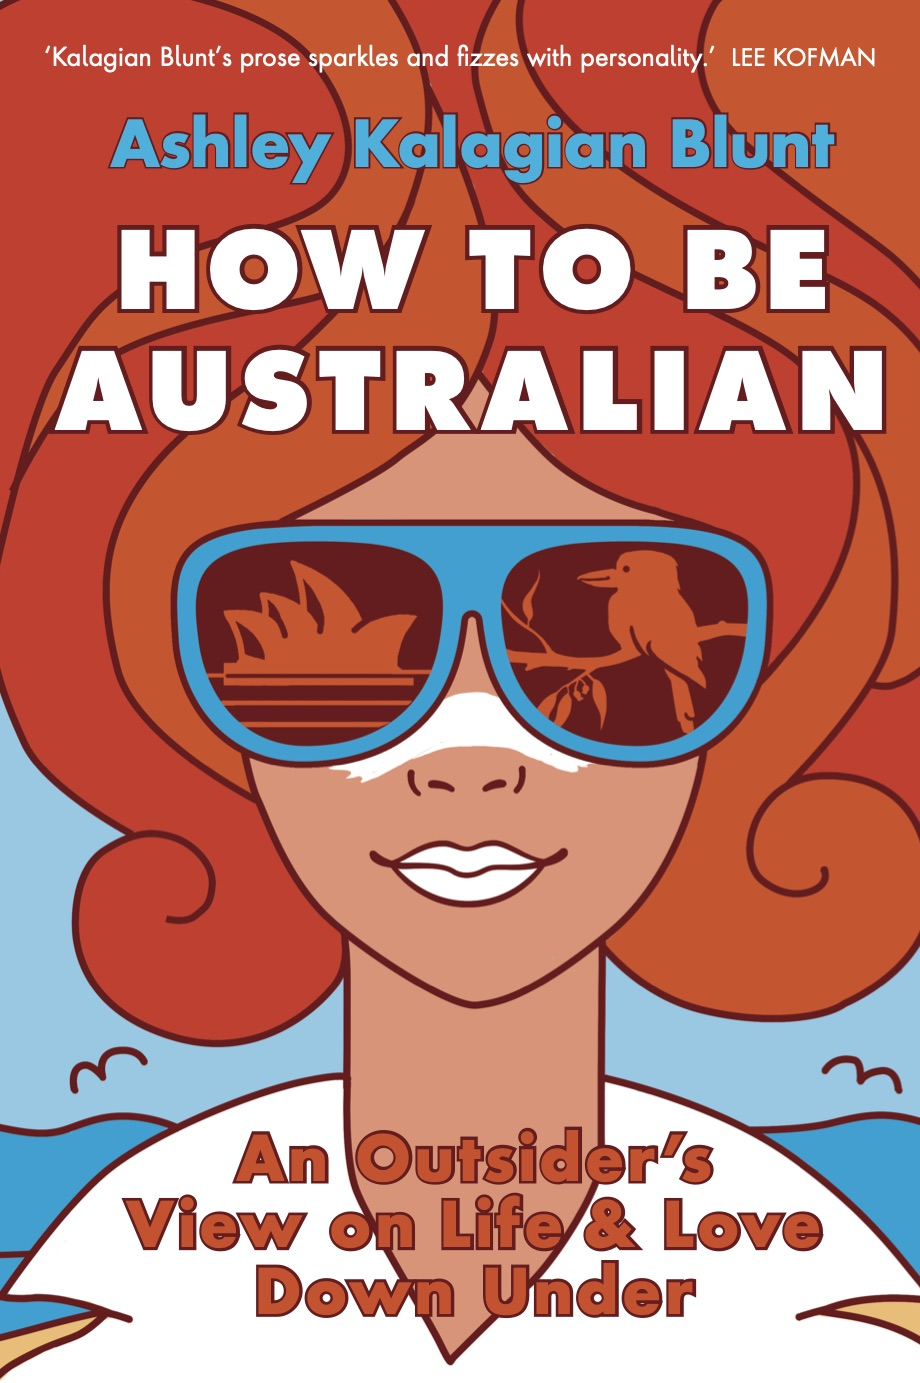 Cover image of the book 'How To Be Australian'